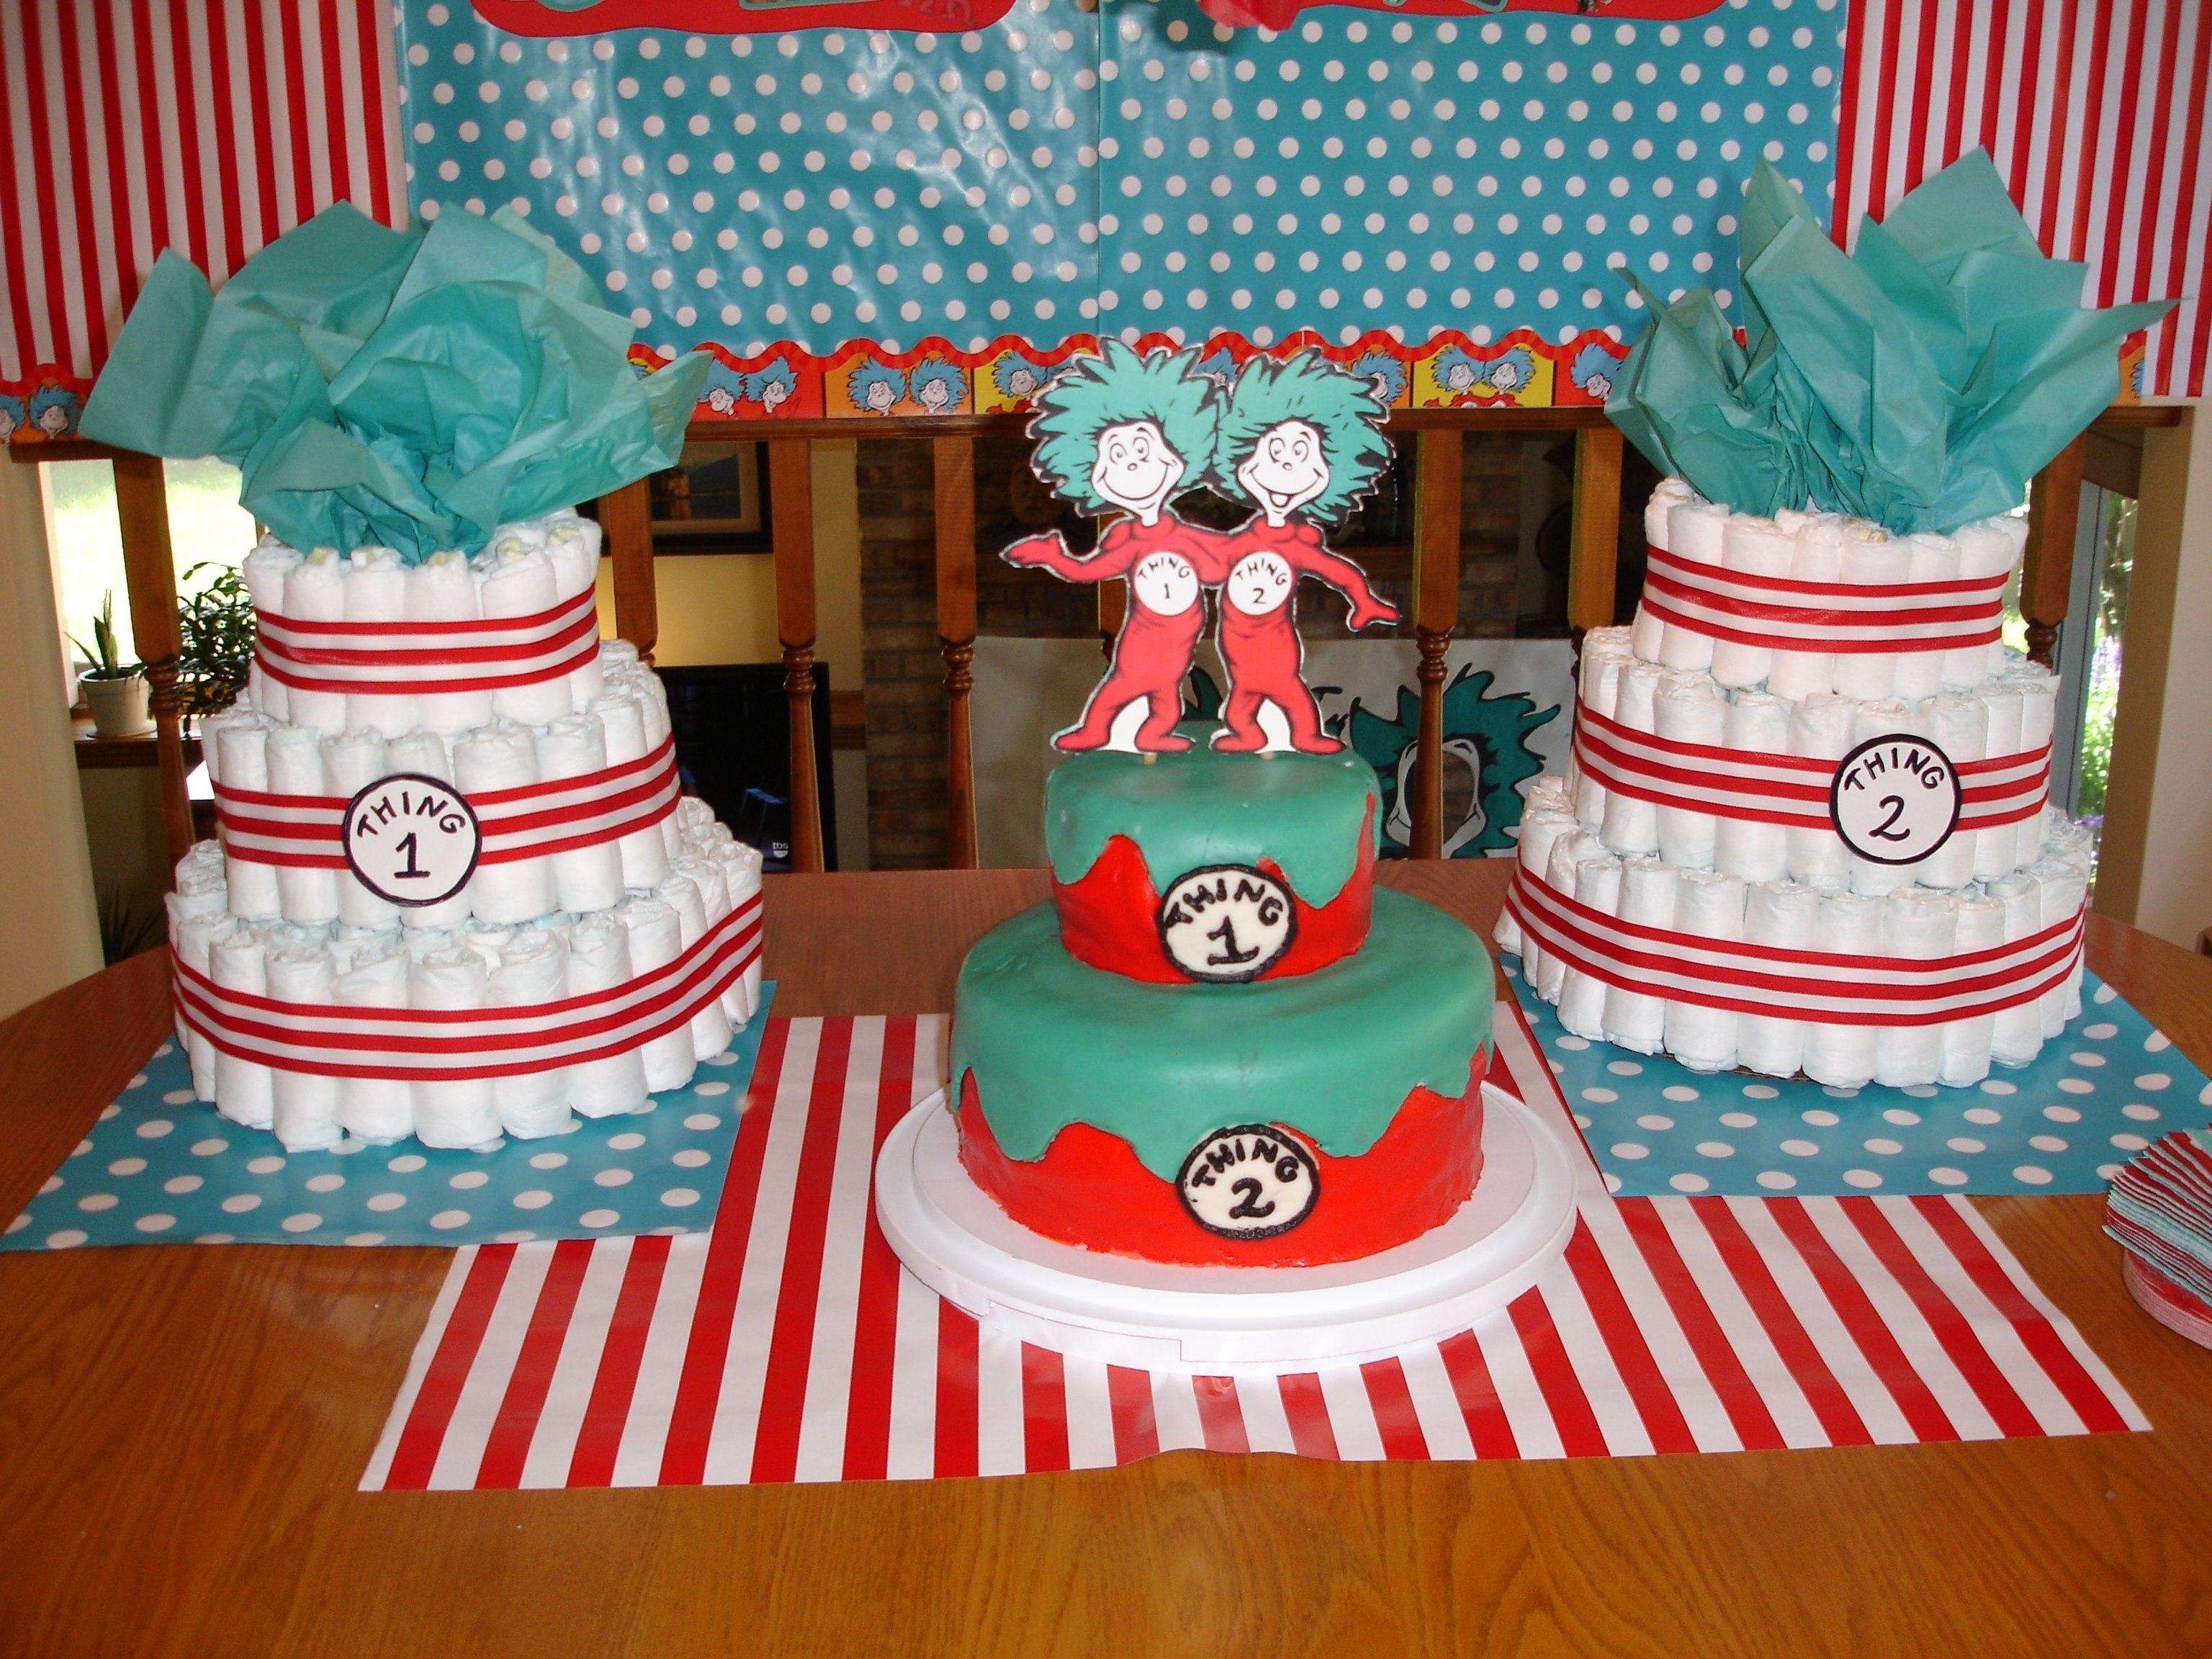 10 Fantastic Thing 1 And Thing 2 Baby Shower Ideas baby shower thing 1 and thing 2 baby shower greeks n sweets thing 2021